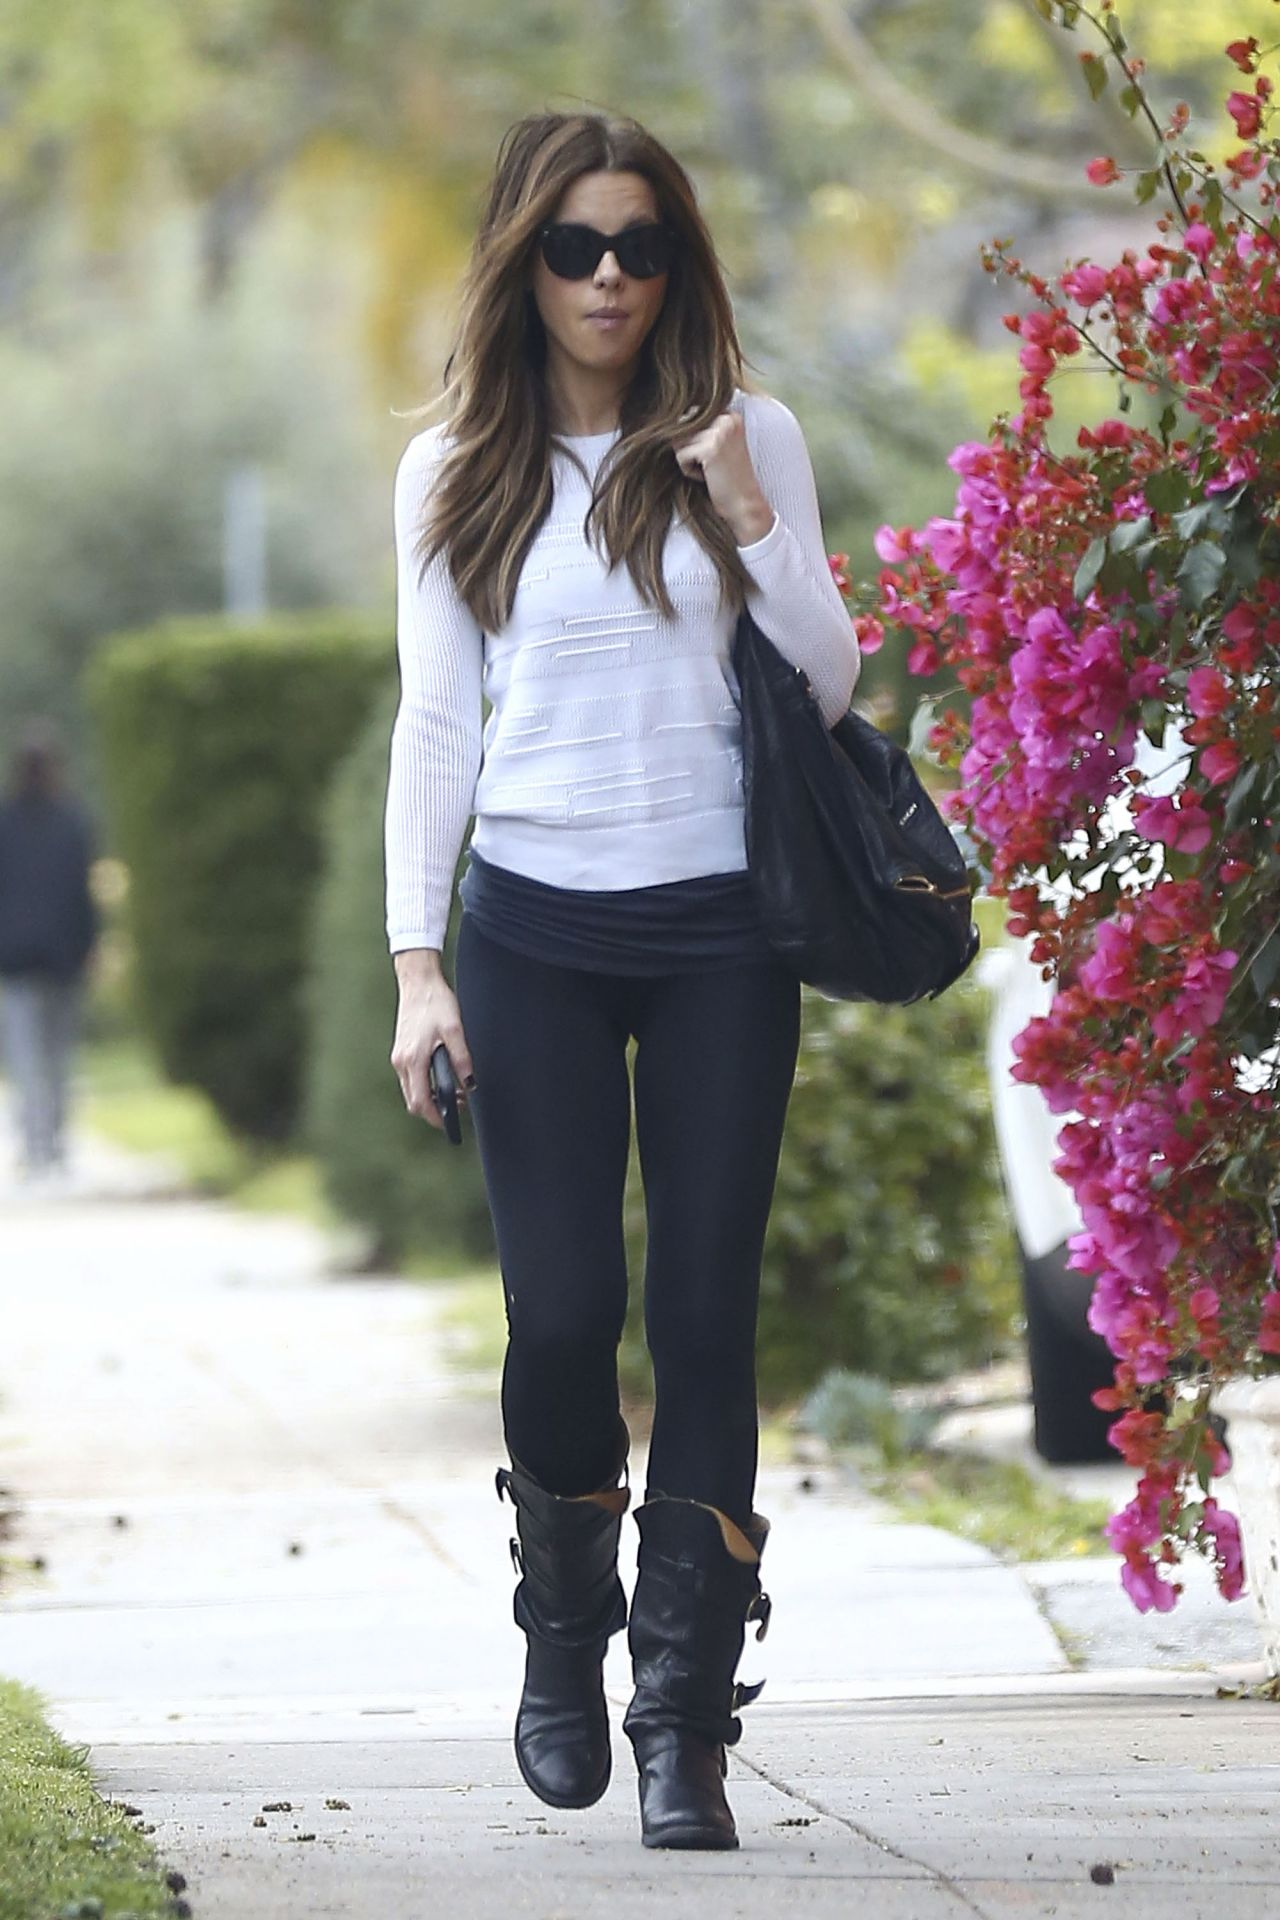 Kate Beckinsale In Casual Attire Beverly Hills Ca 3 22